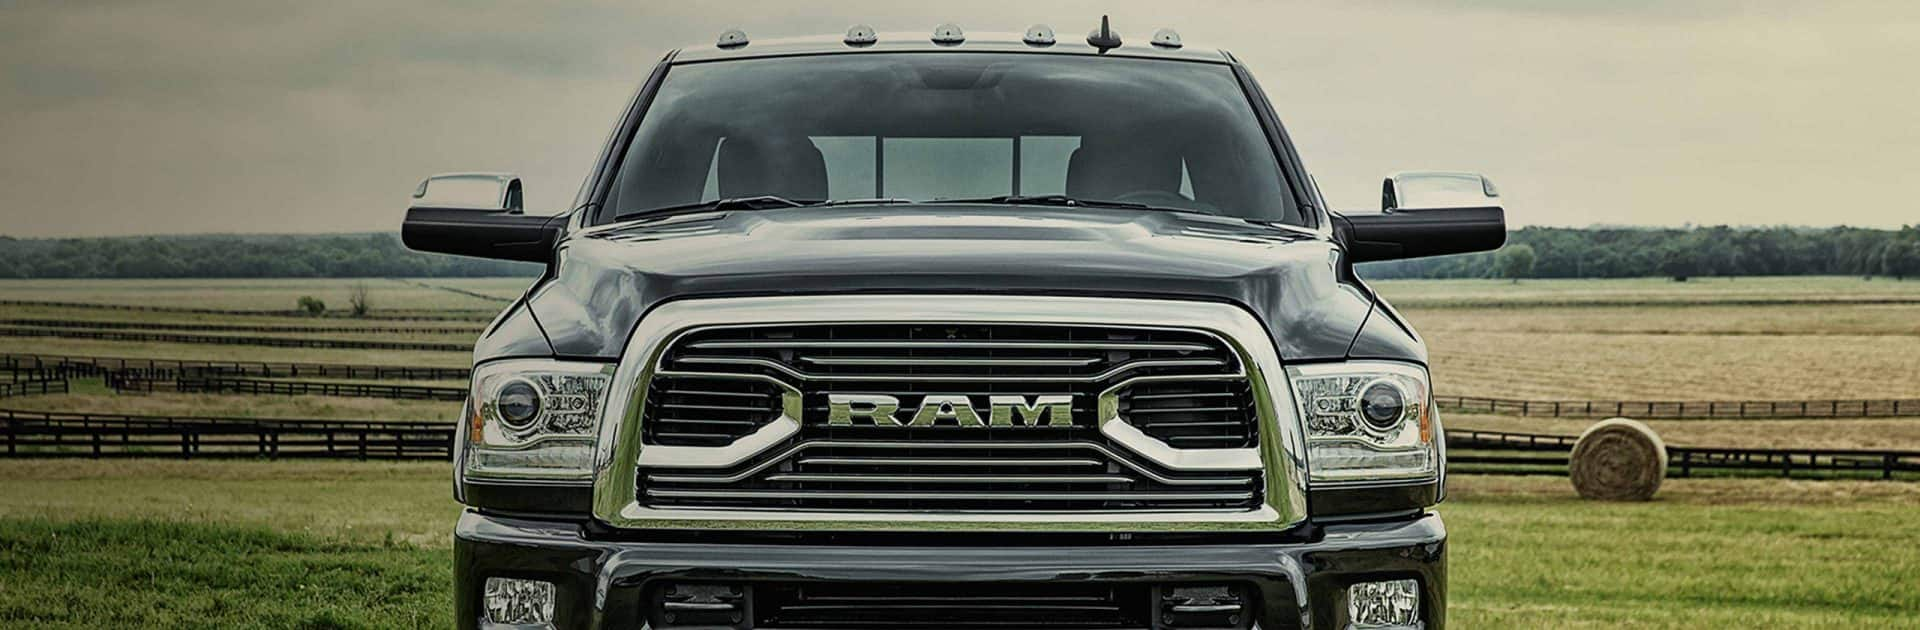 2018 Ram Trucks 3500 Front Grille